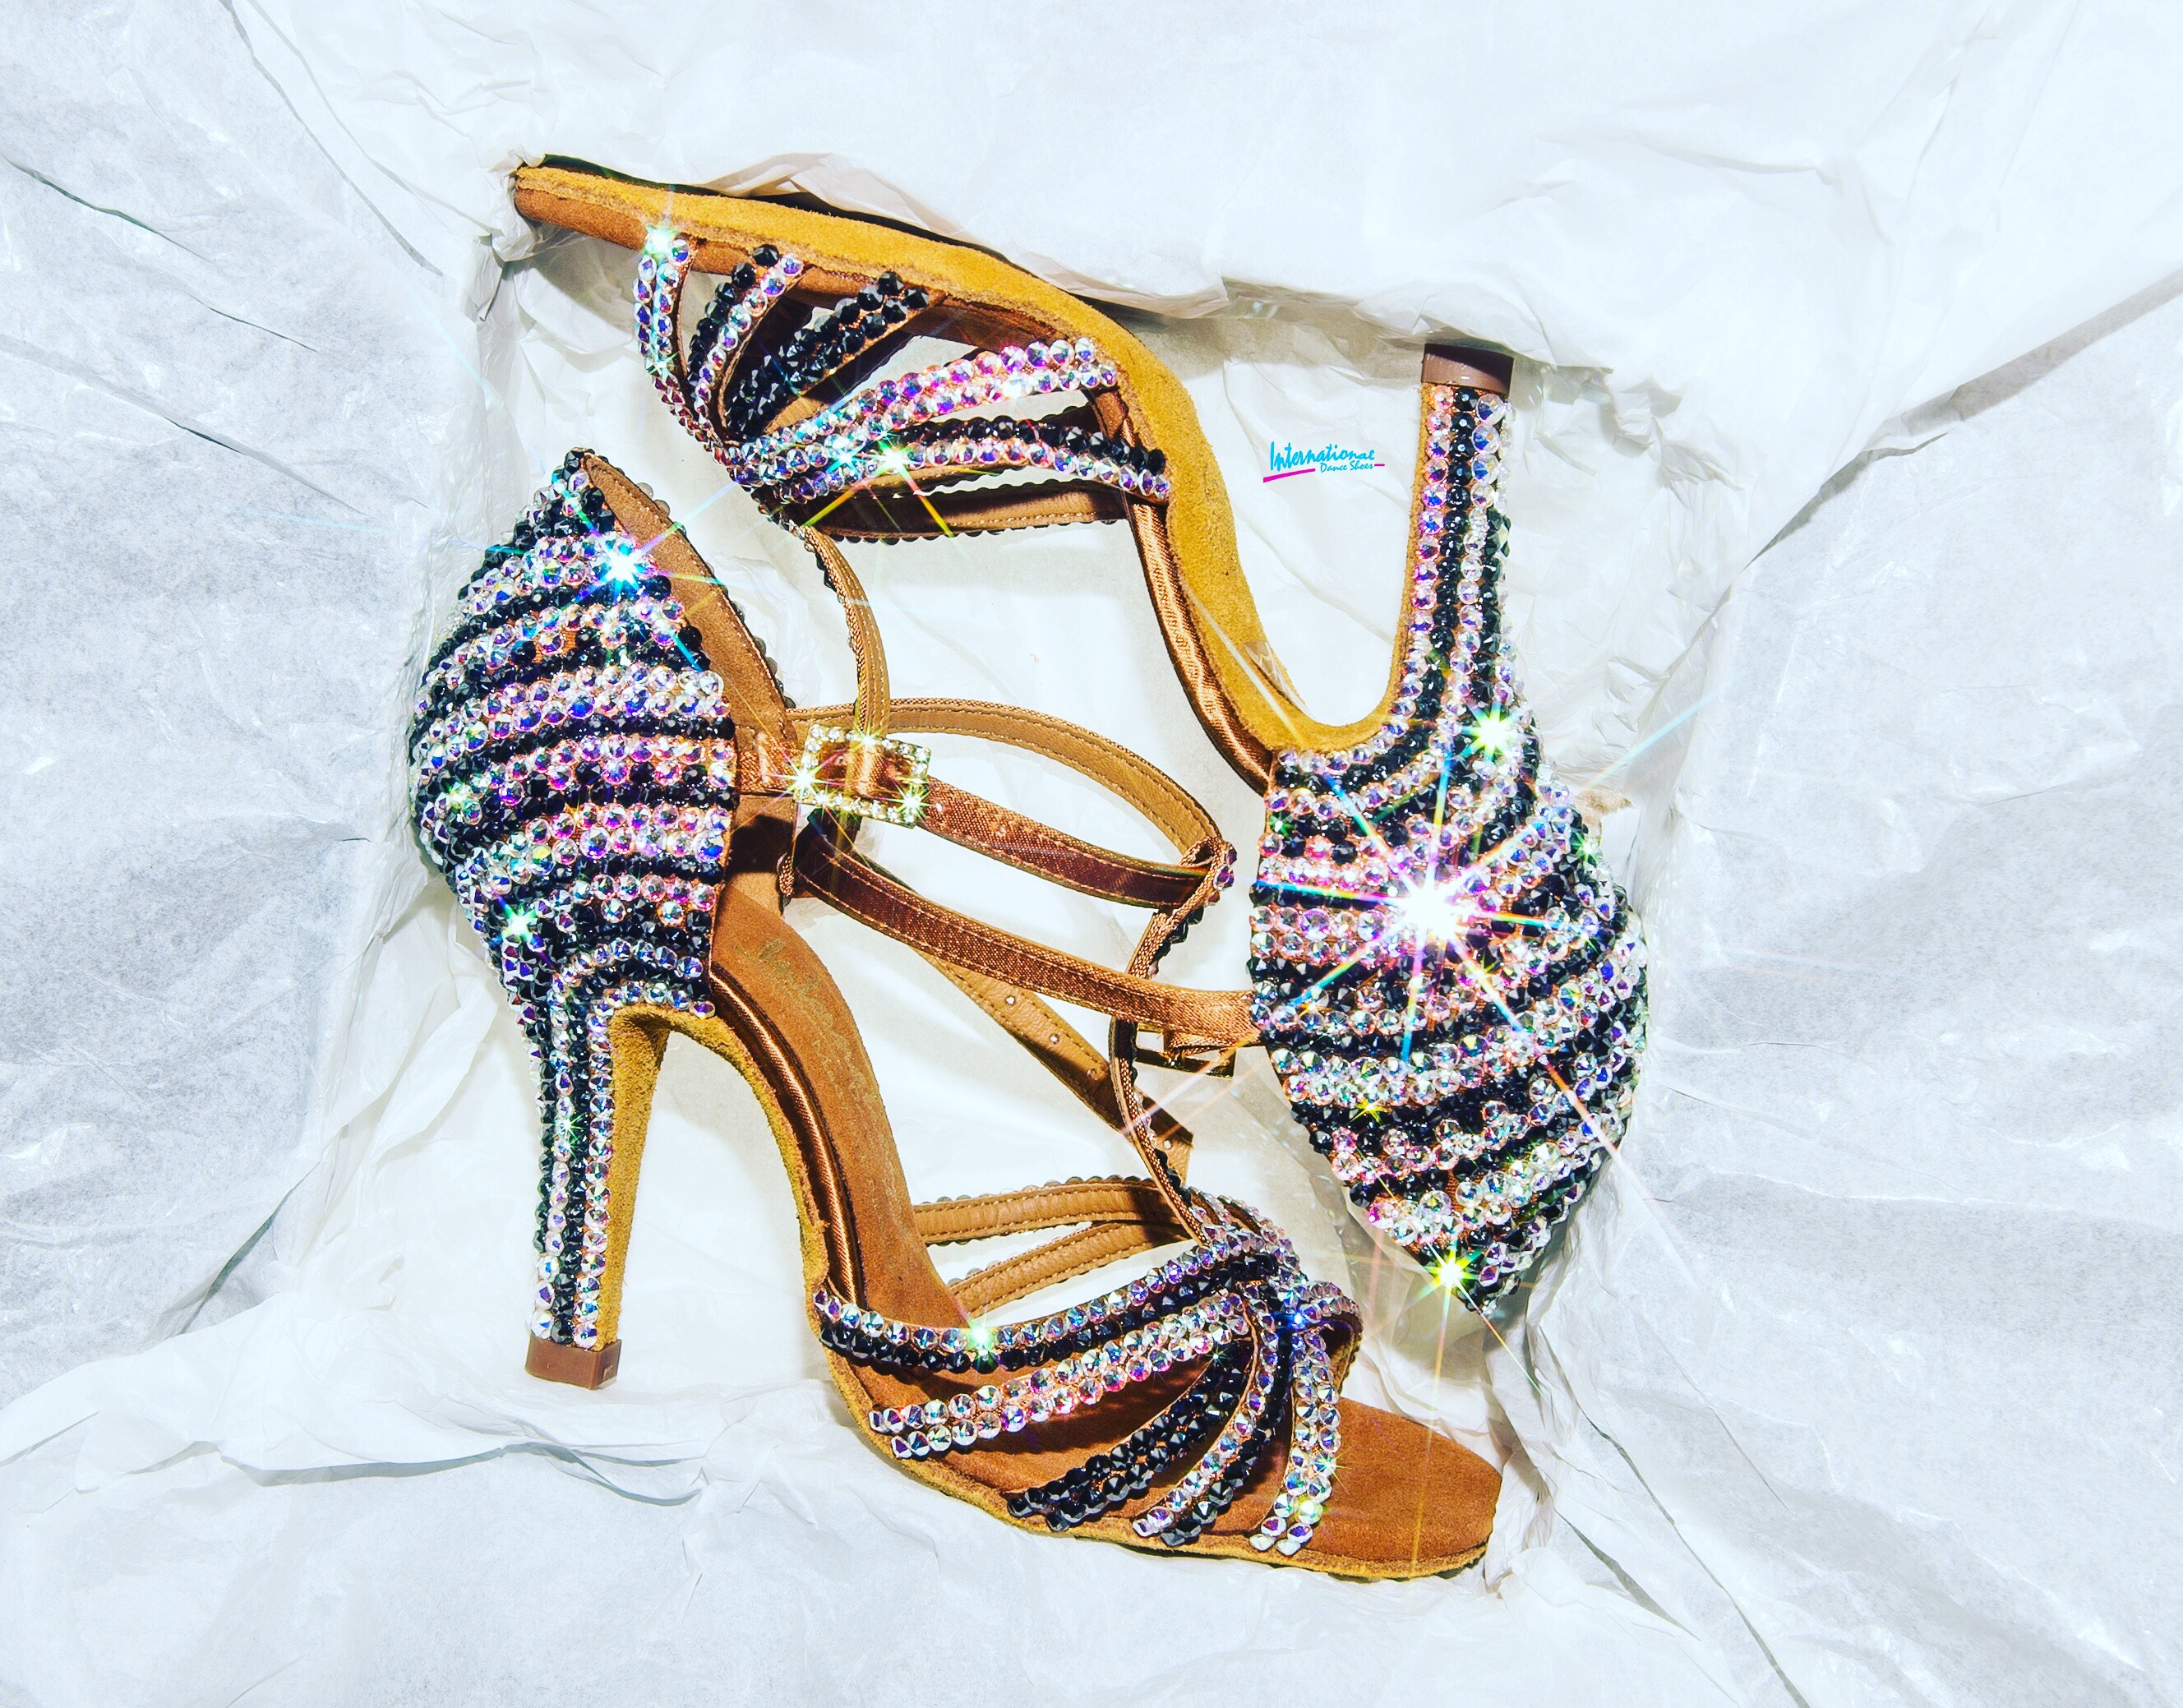 c0c956b14772 Swarovski Xirius Crystals now available! - International Dance Shoes